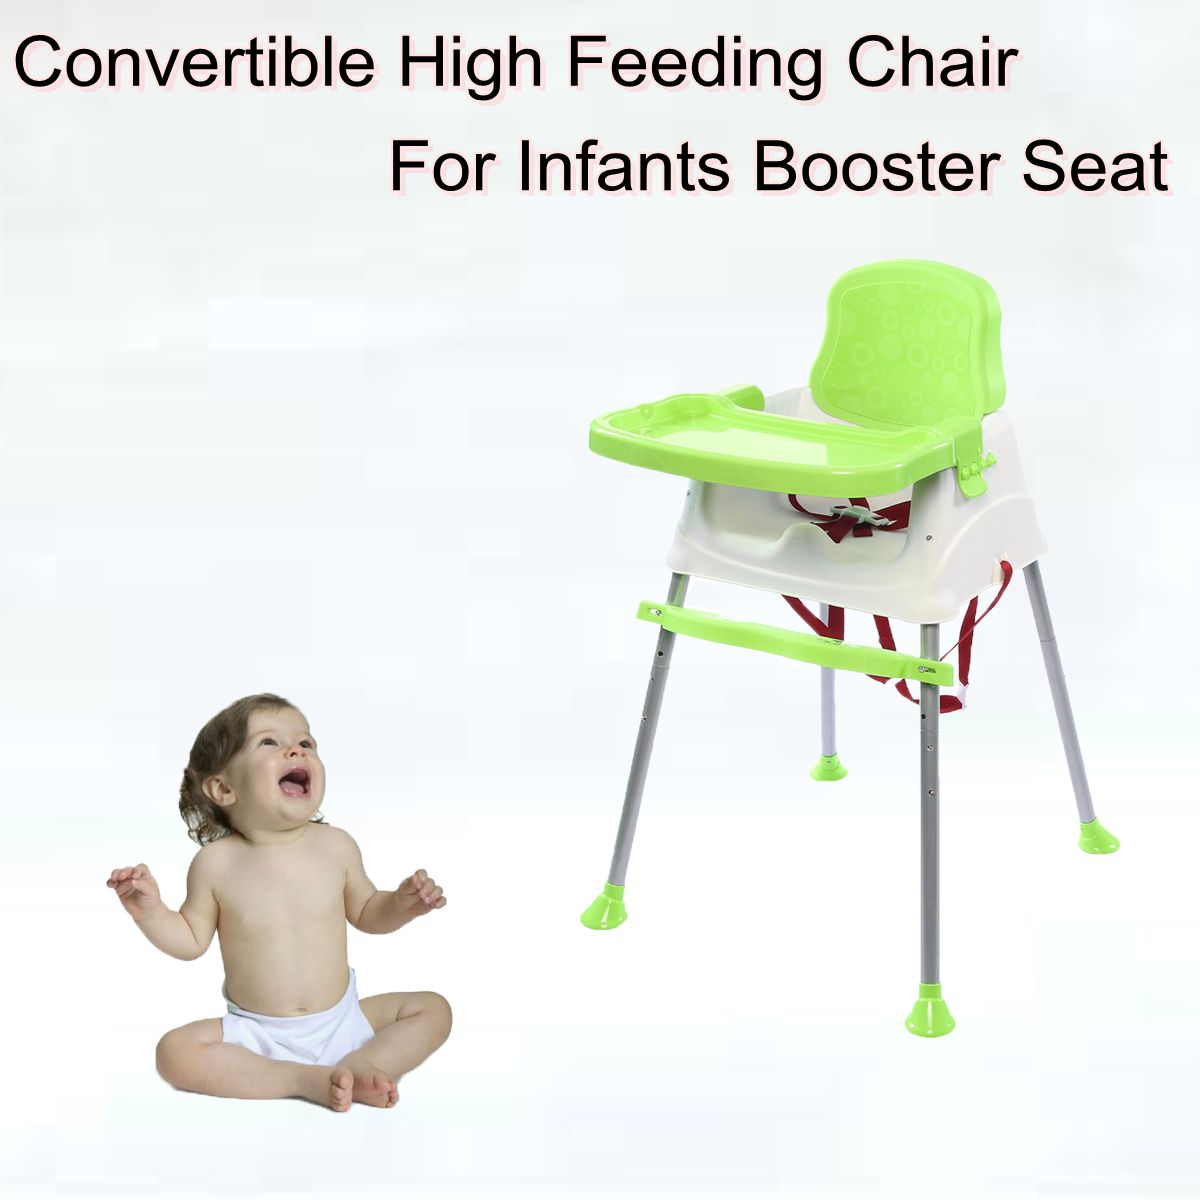 baby chairs for eating ebay high chair convertible feeding infants booster seat green walmart com